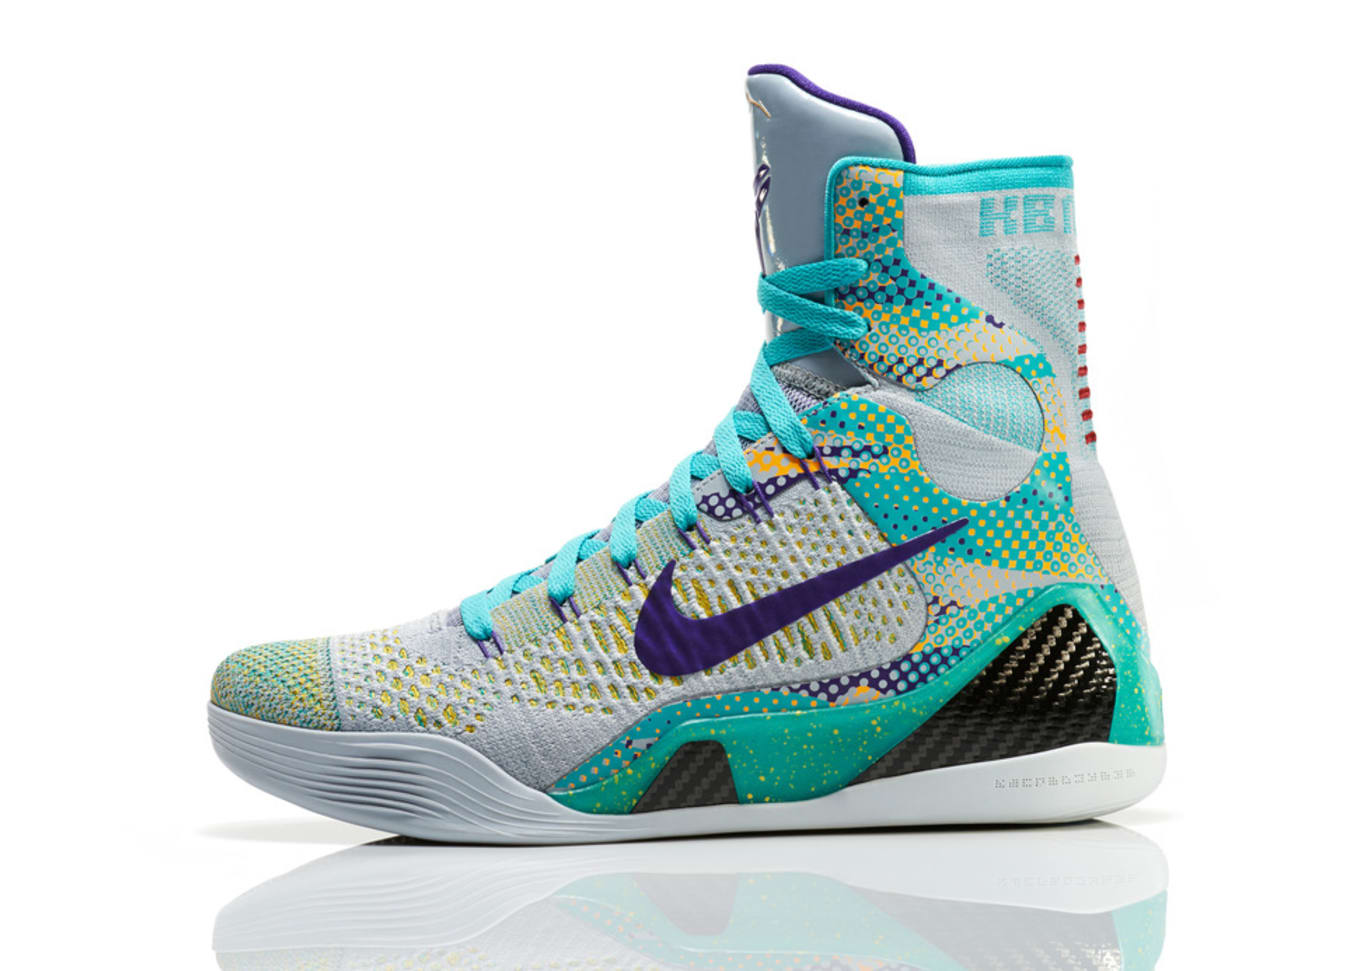 78757280652c The Kobe 9 switched things up from what we d come to expect from the Elite  line